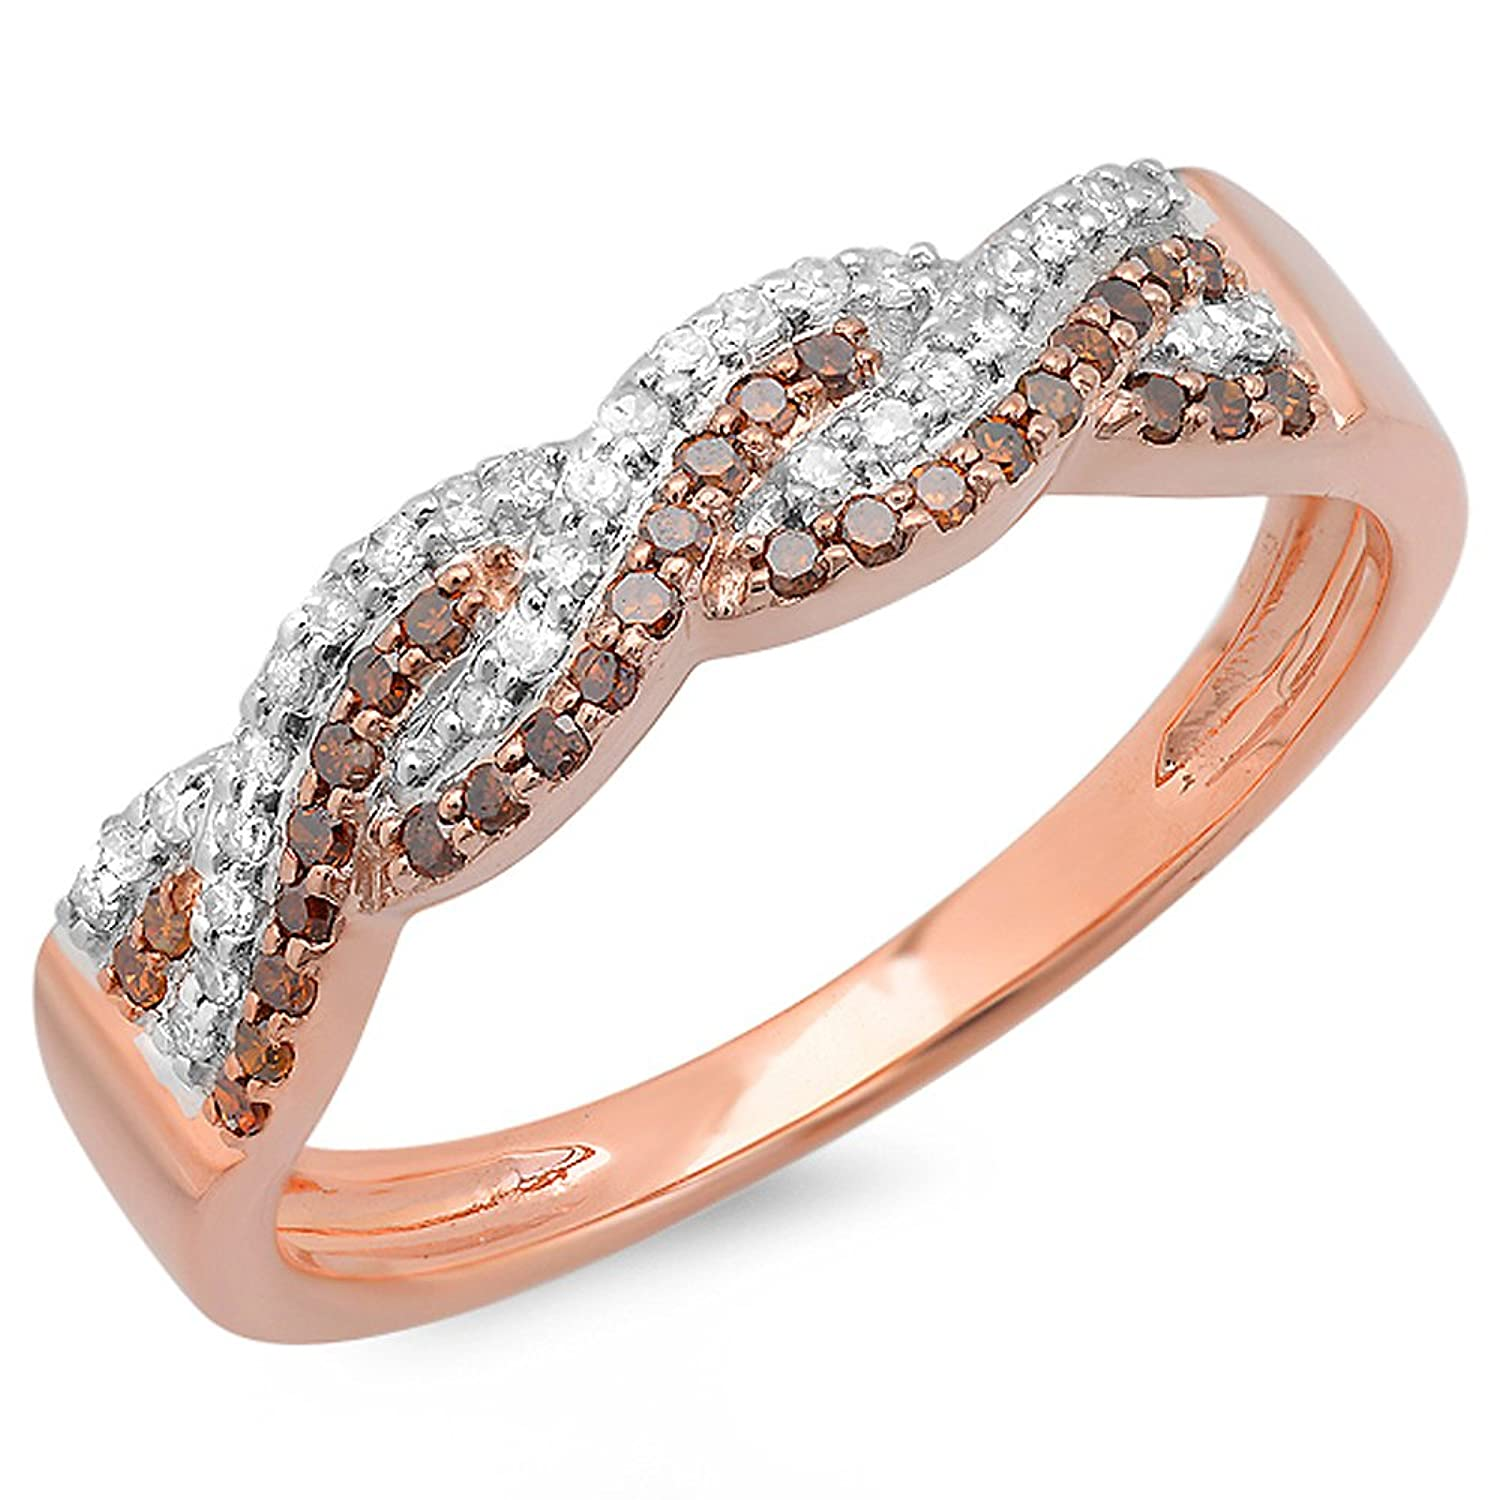 0.30 Carat (ctw) 14K Rose Gold White & Red Diamond Ladies Anniversary Wedding Band Swirl Ring 1/3 CT